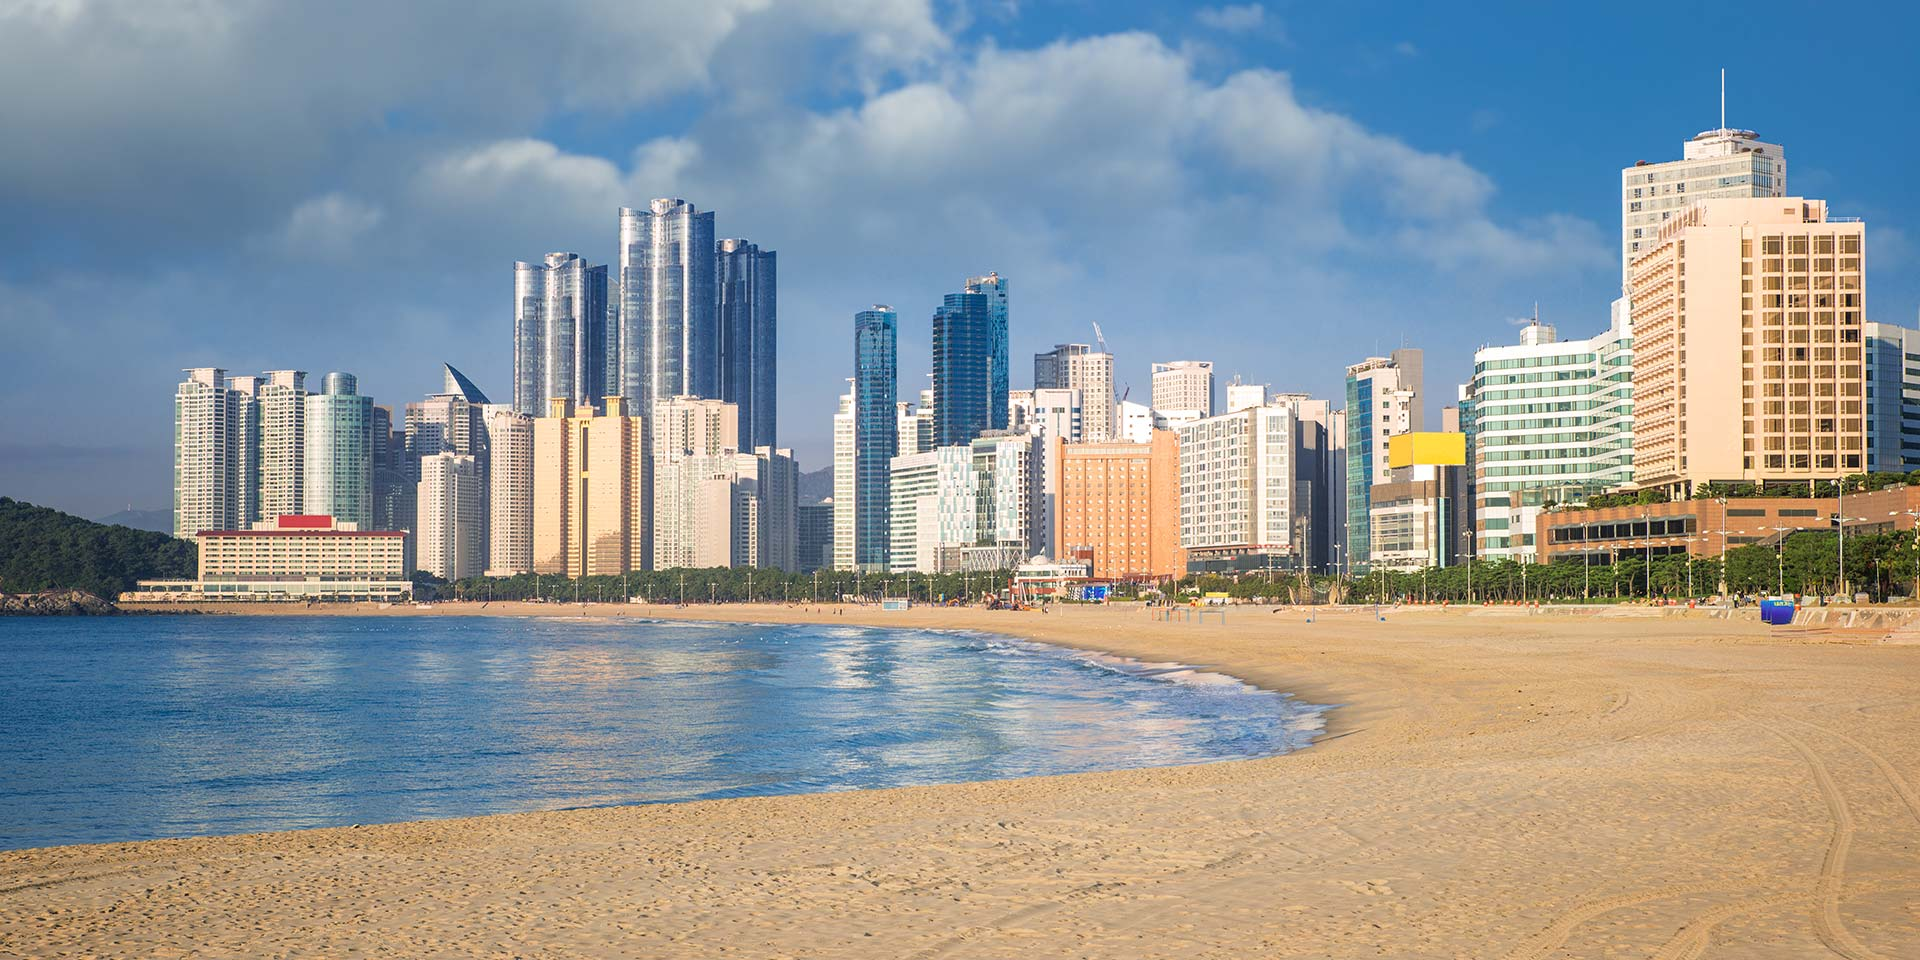 Songdo, Haeundae, Gwangalli: 3 Busan Beaches for Luxury Travelers -  Travelogues from Remote Lands